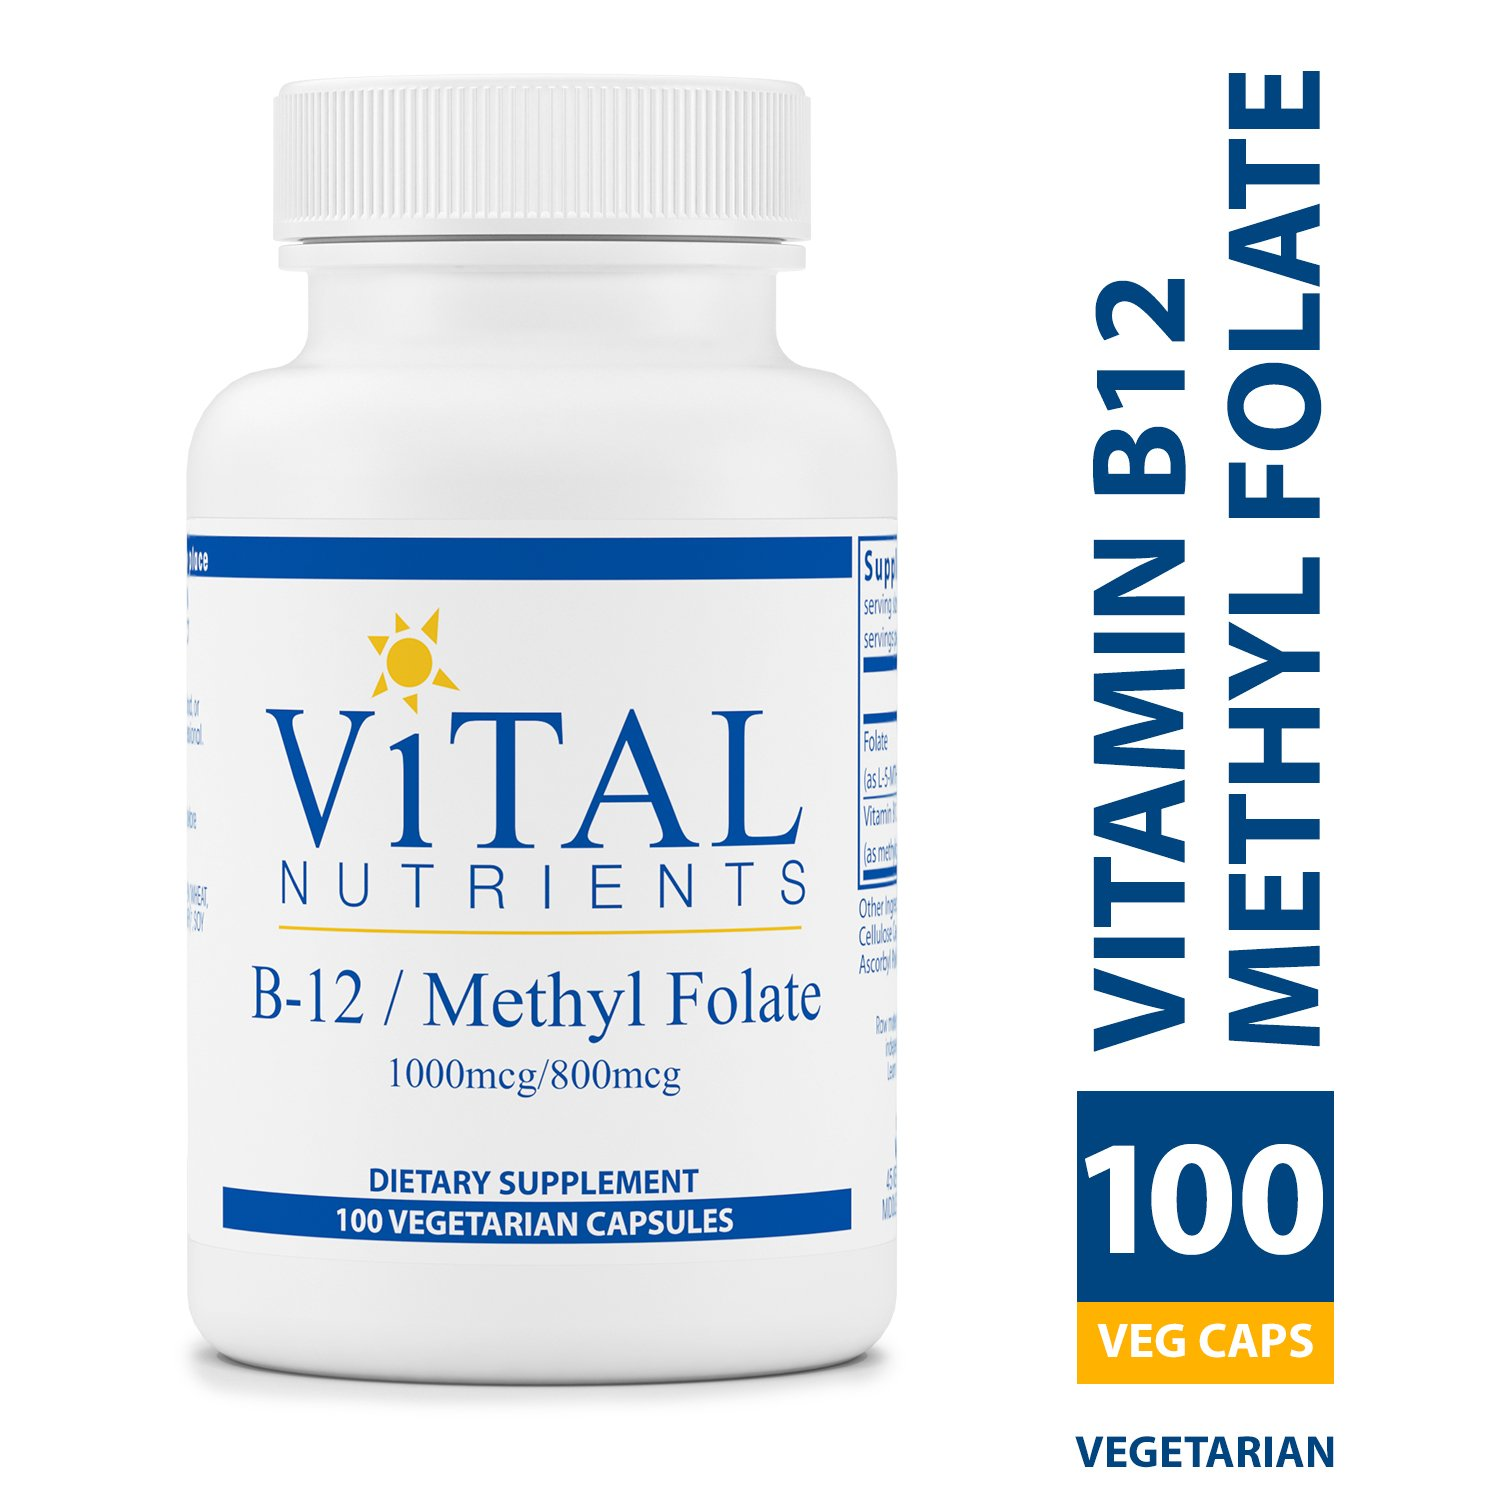 Vital Nutrients - Vitamin B12 / Methyl Folate - Supports Healthy Brain Cell Function - 100 Capsules per Bottle by Vital Nutrients